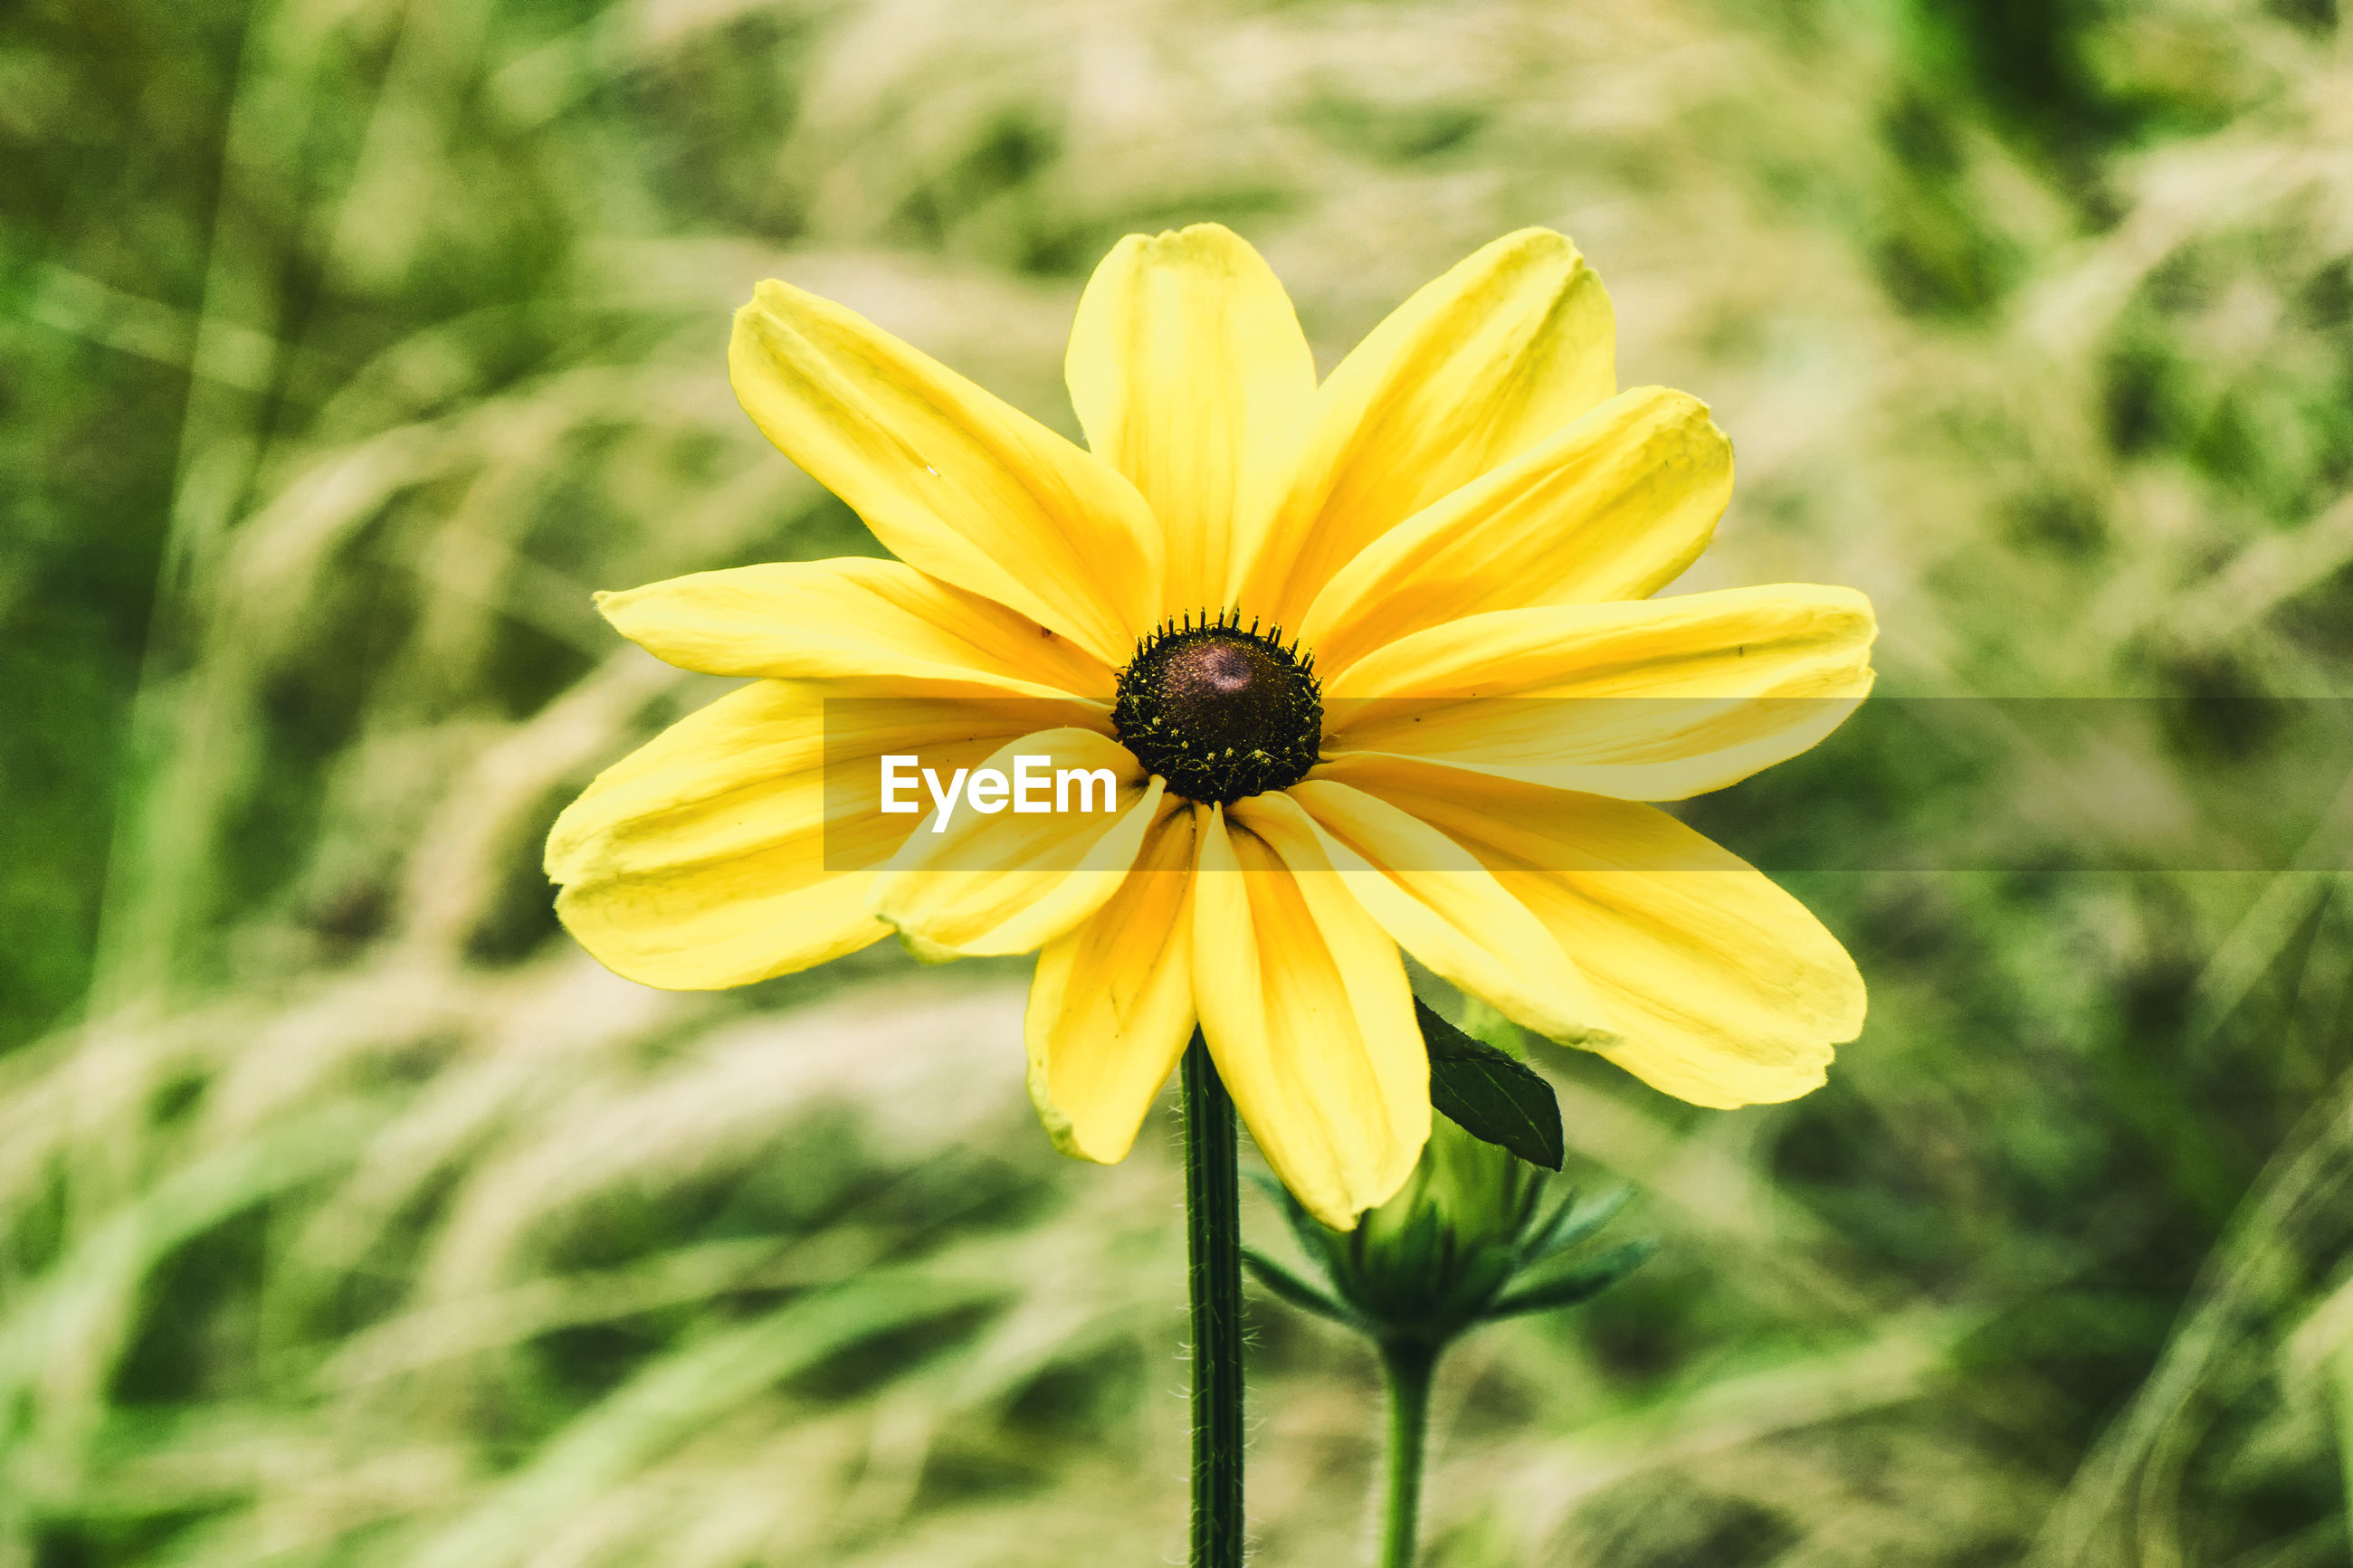 CLOSE-UP OF FRESH YELLOW FLOWER BLOOMING OUTDOORS